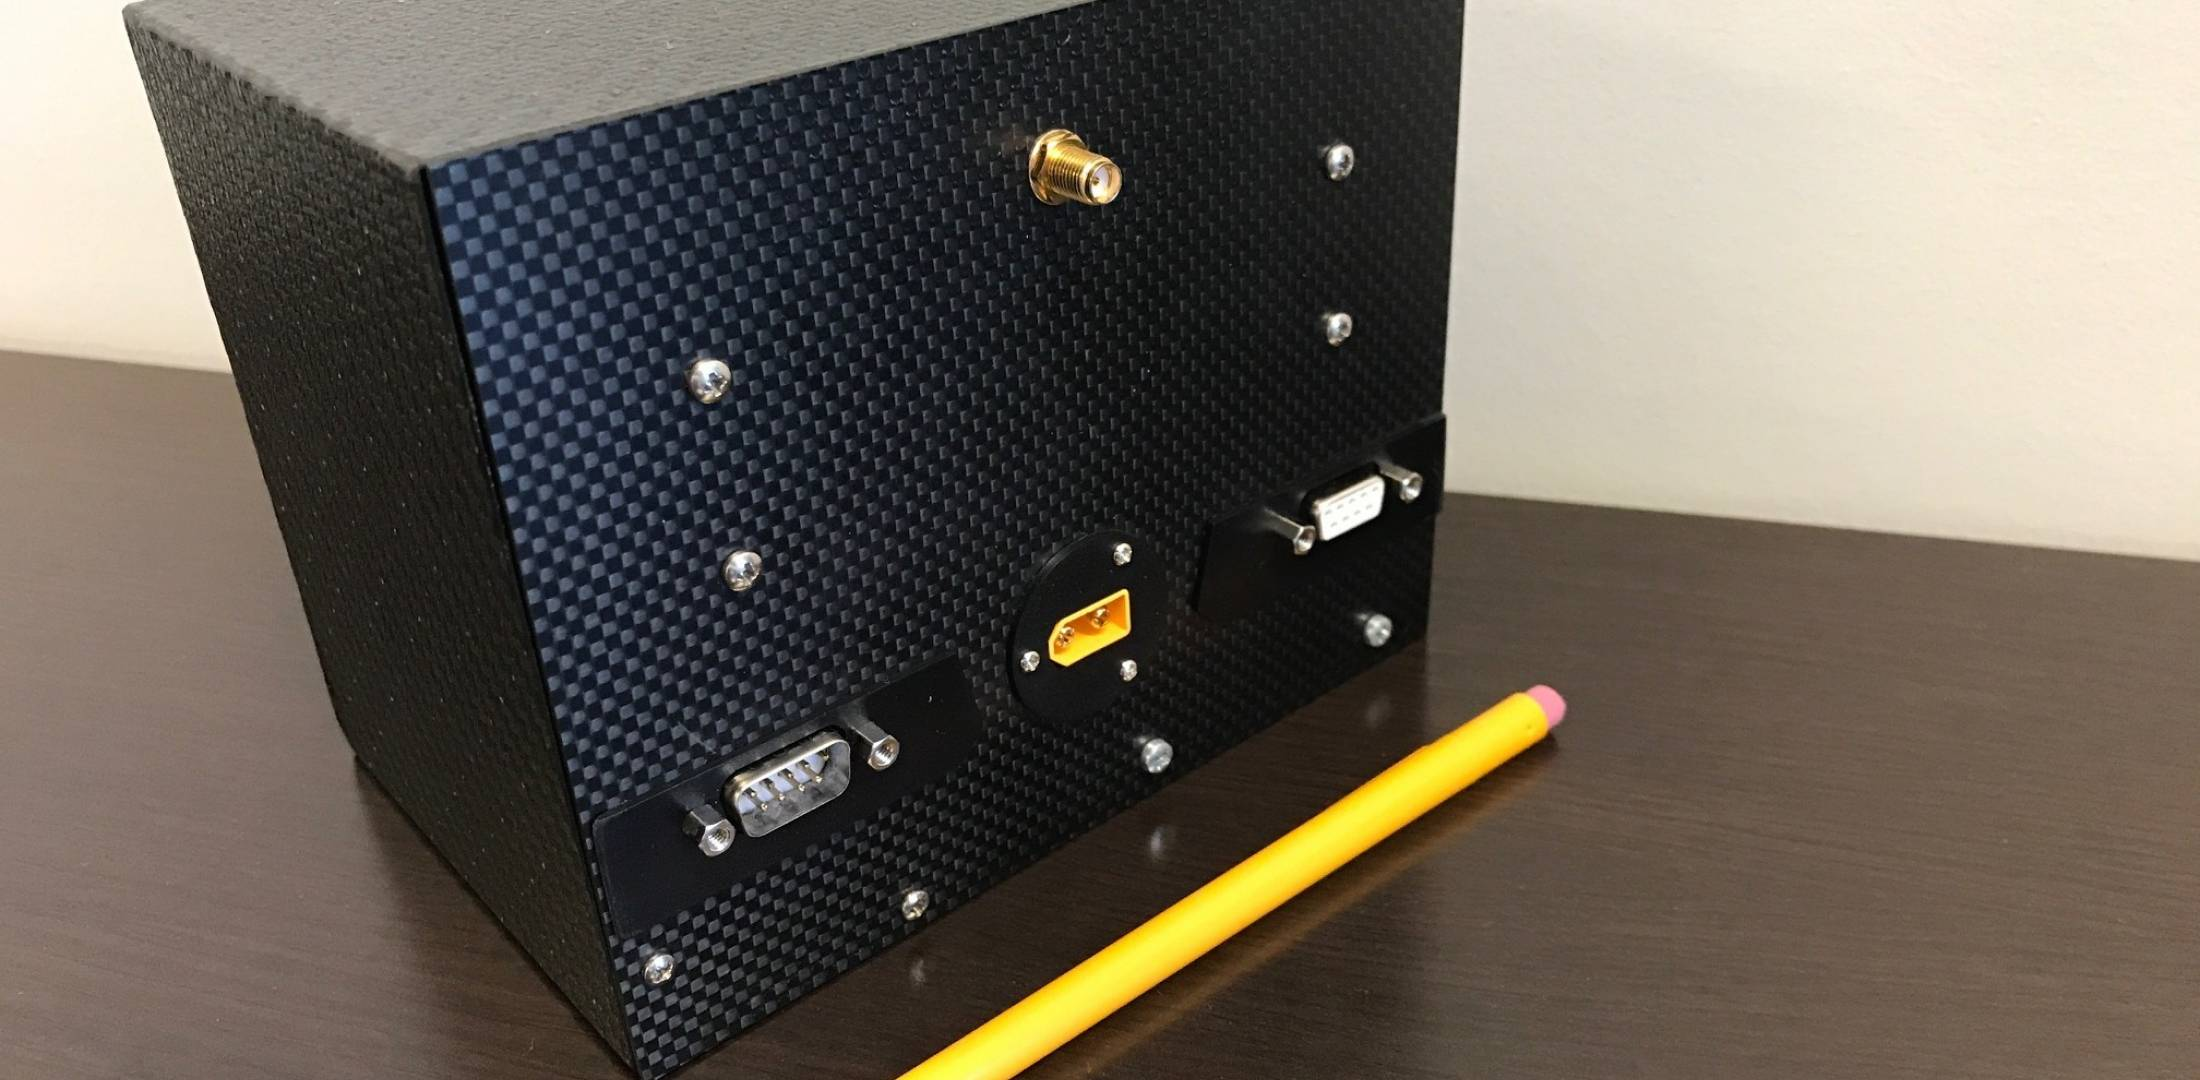 box with pencil to compare size